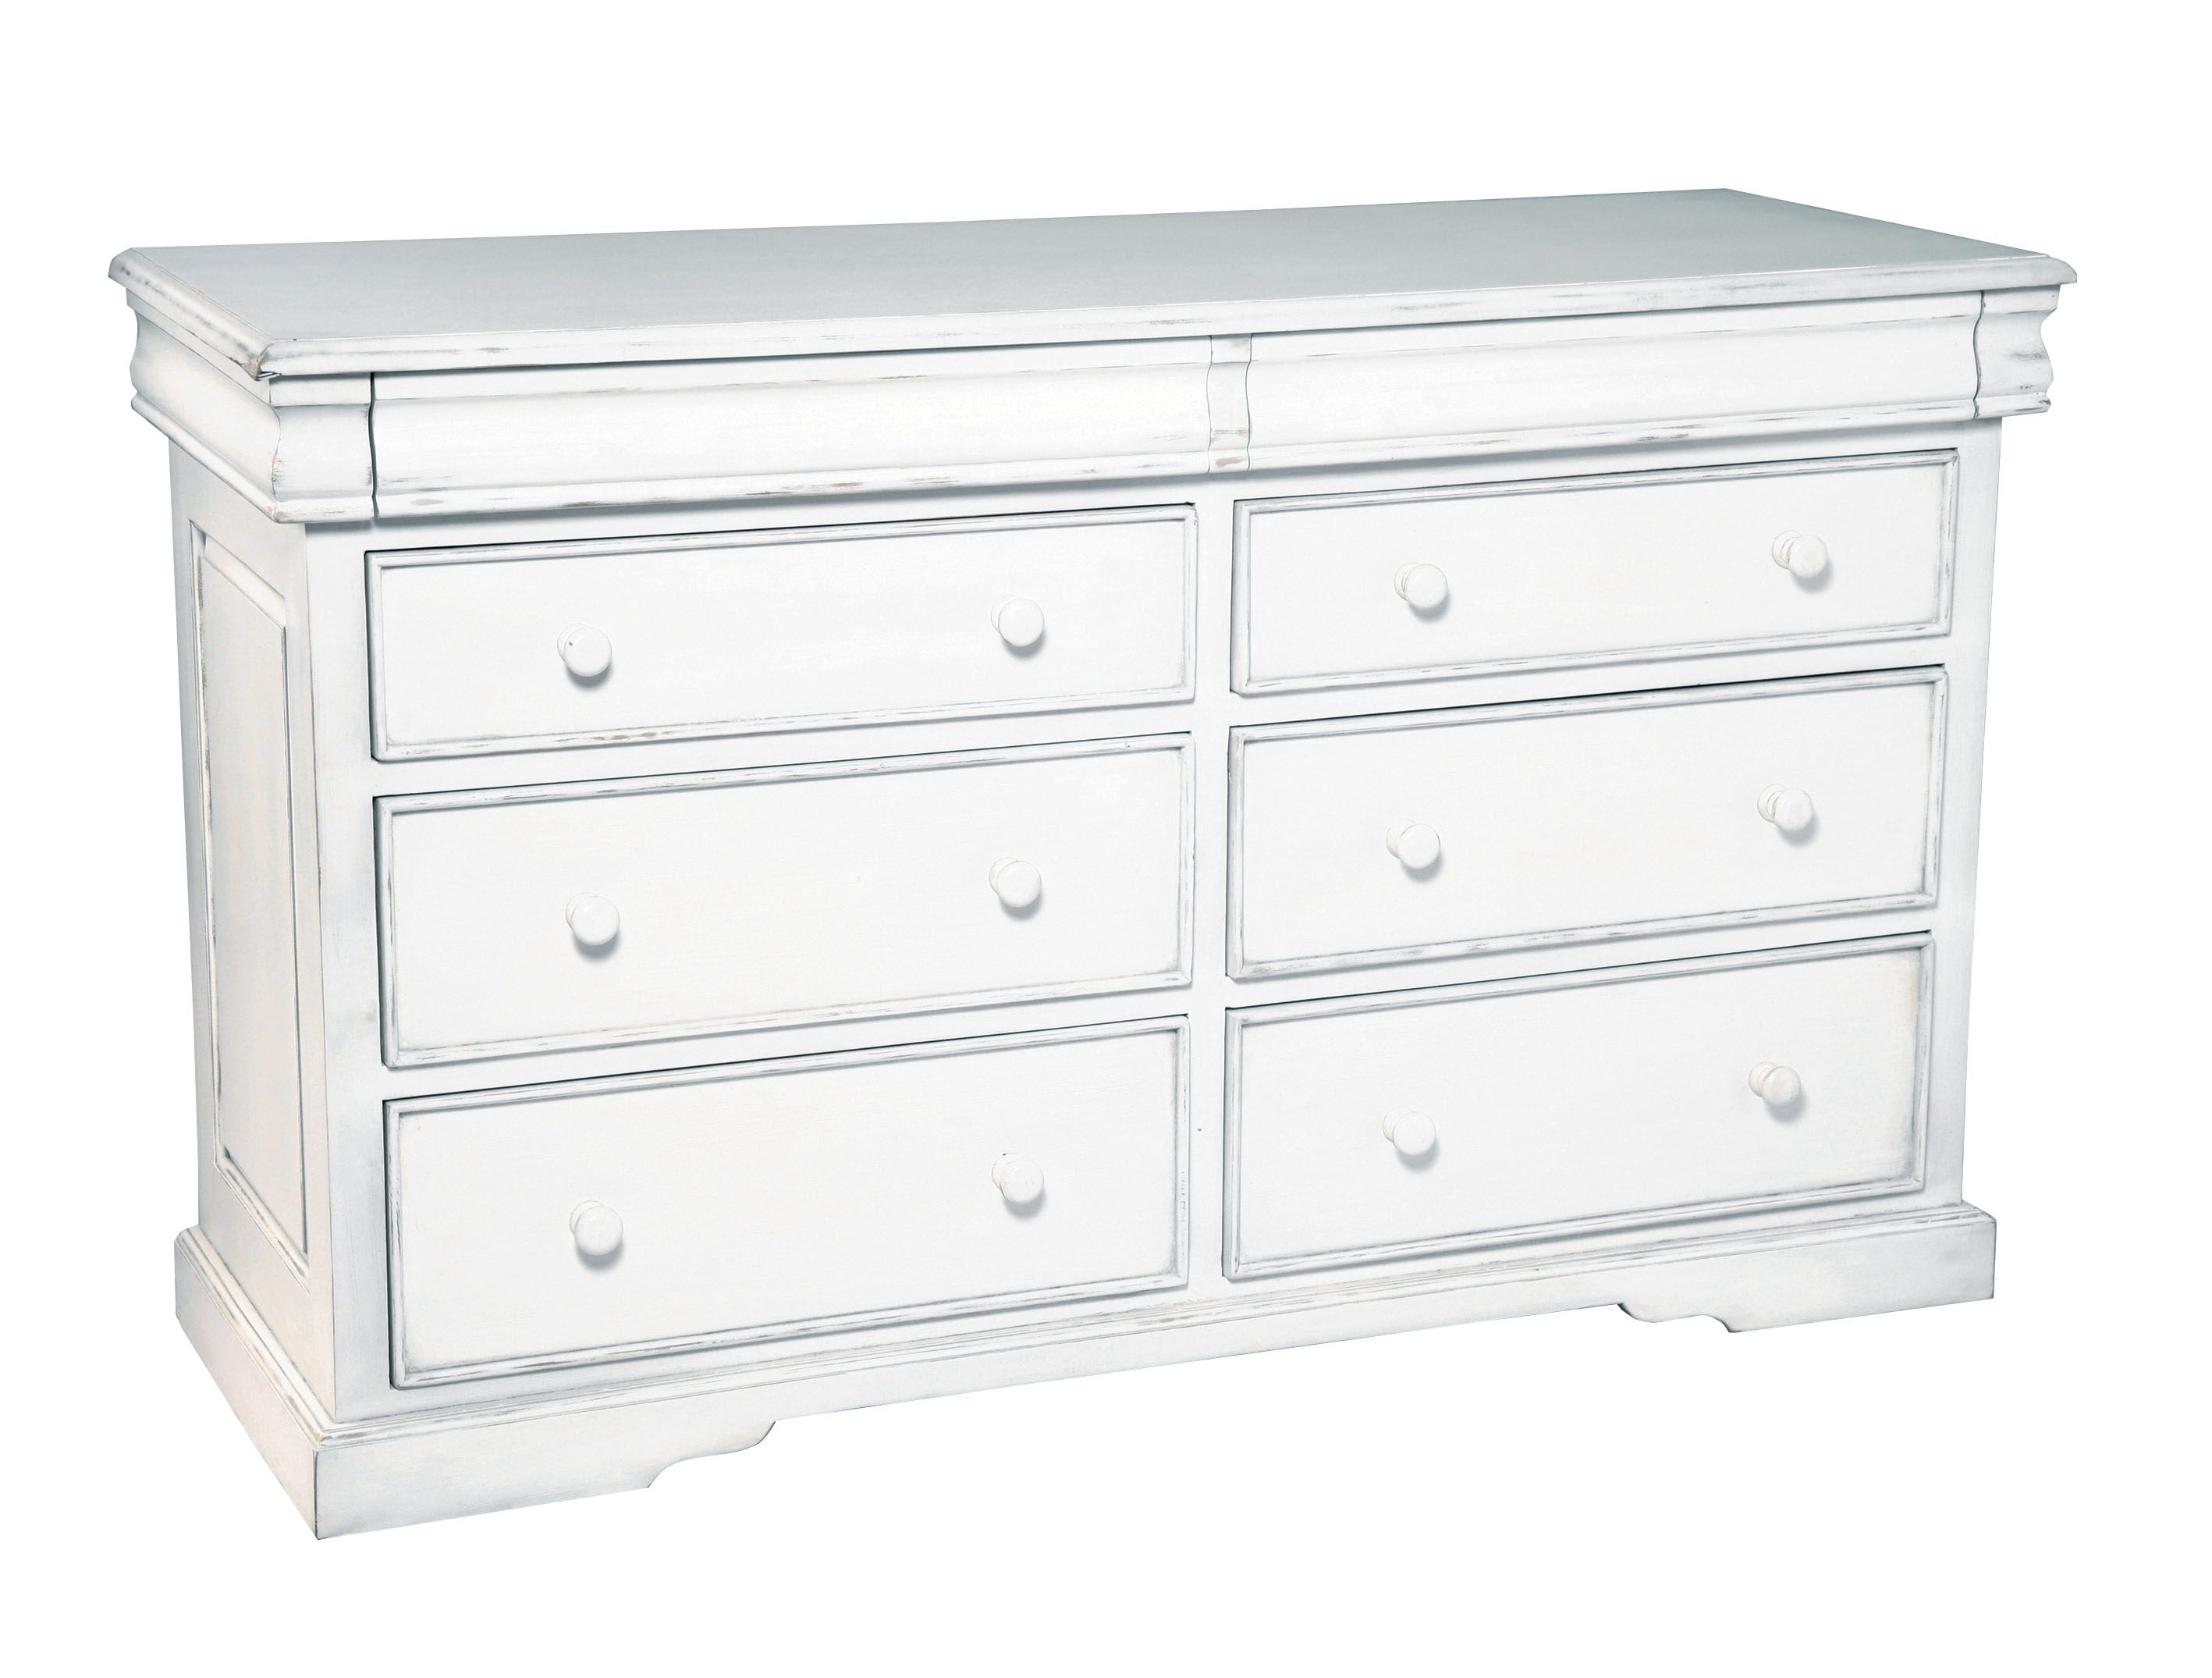 Martine 8 drawer wide chest